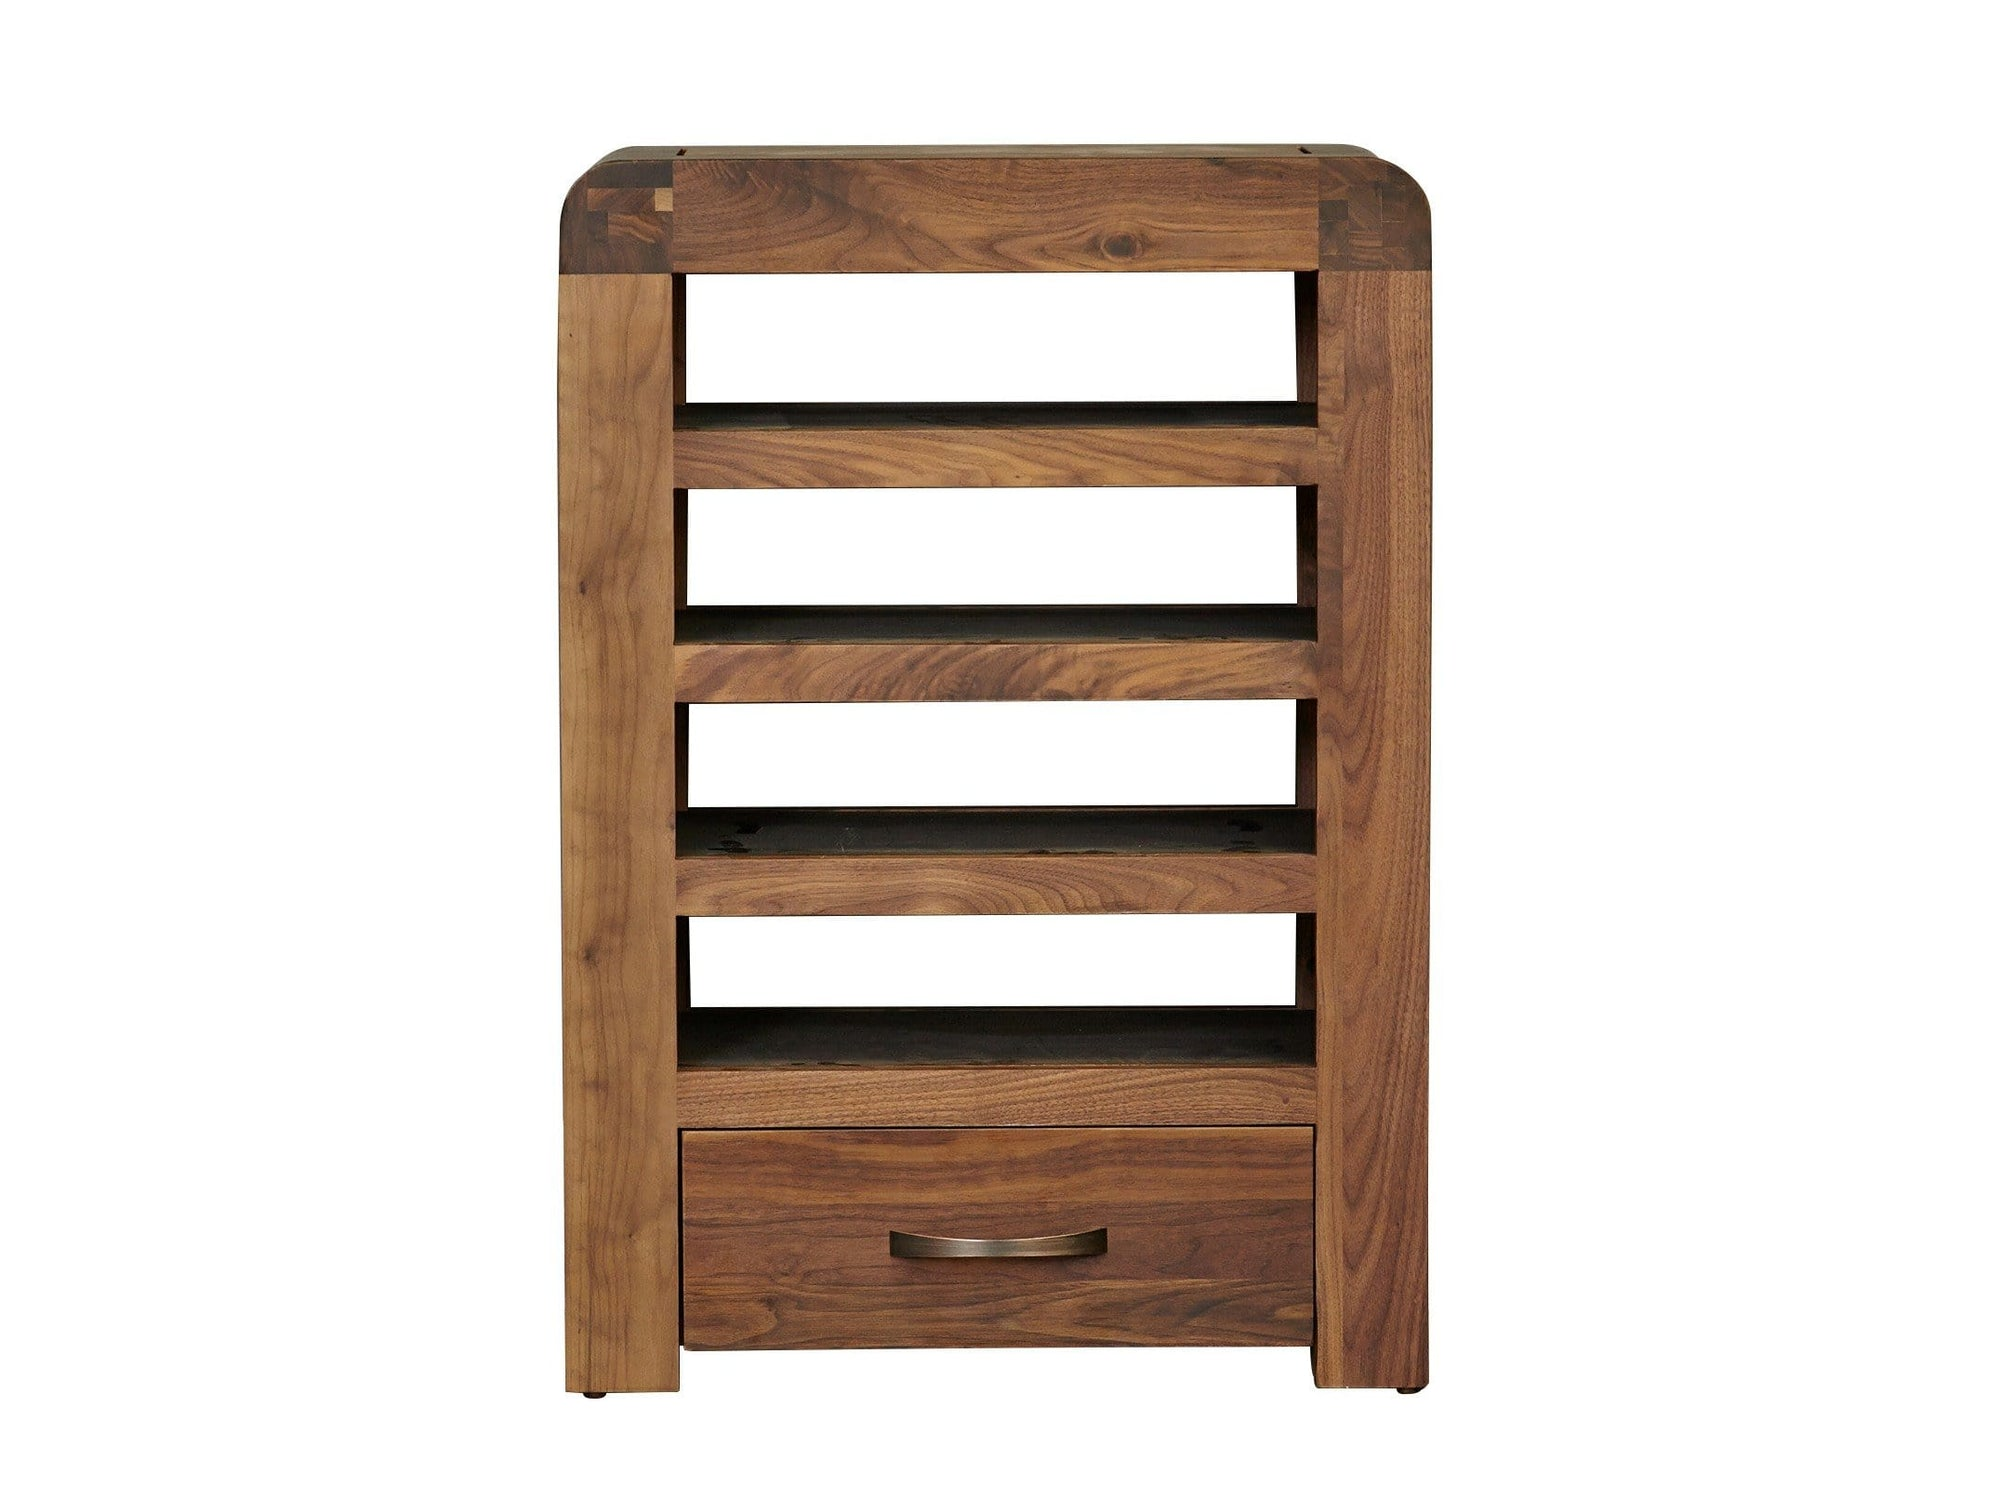 Dark wood media unit with four shelves for stacking media players, plus bottom drawer